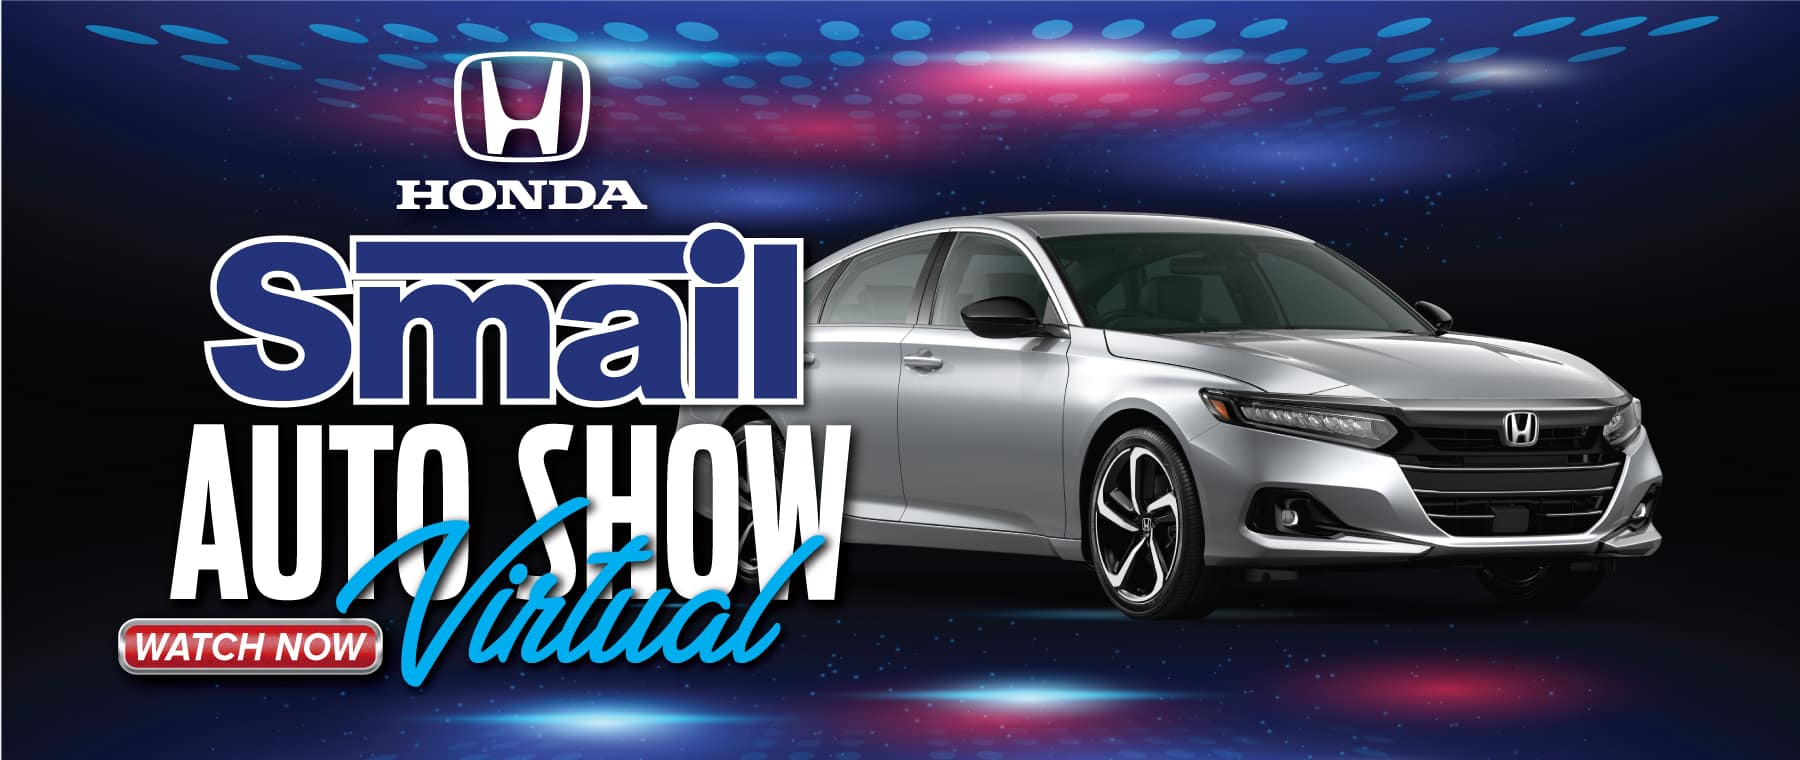 2021 Smail Virtual Auto Show - Watch Now!